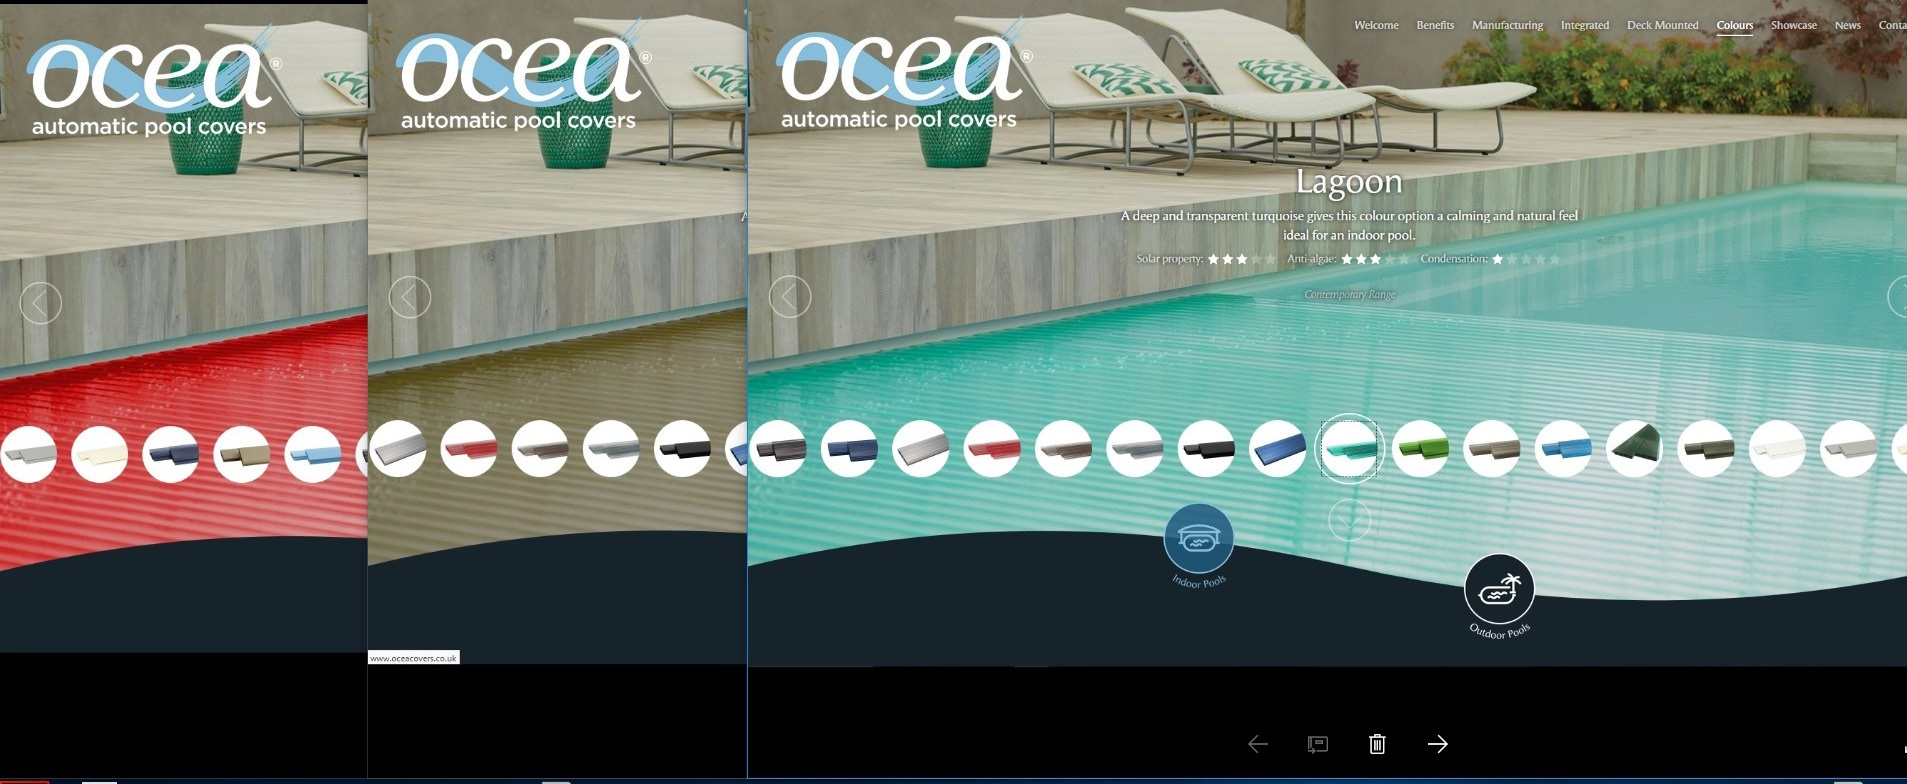 Ocea Web Window